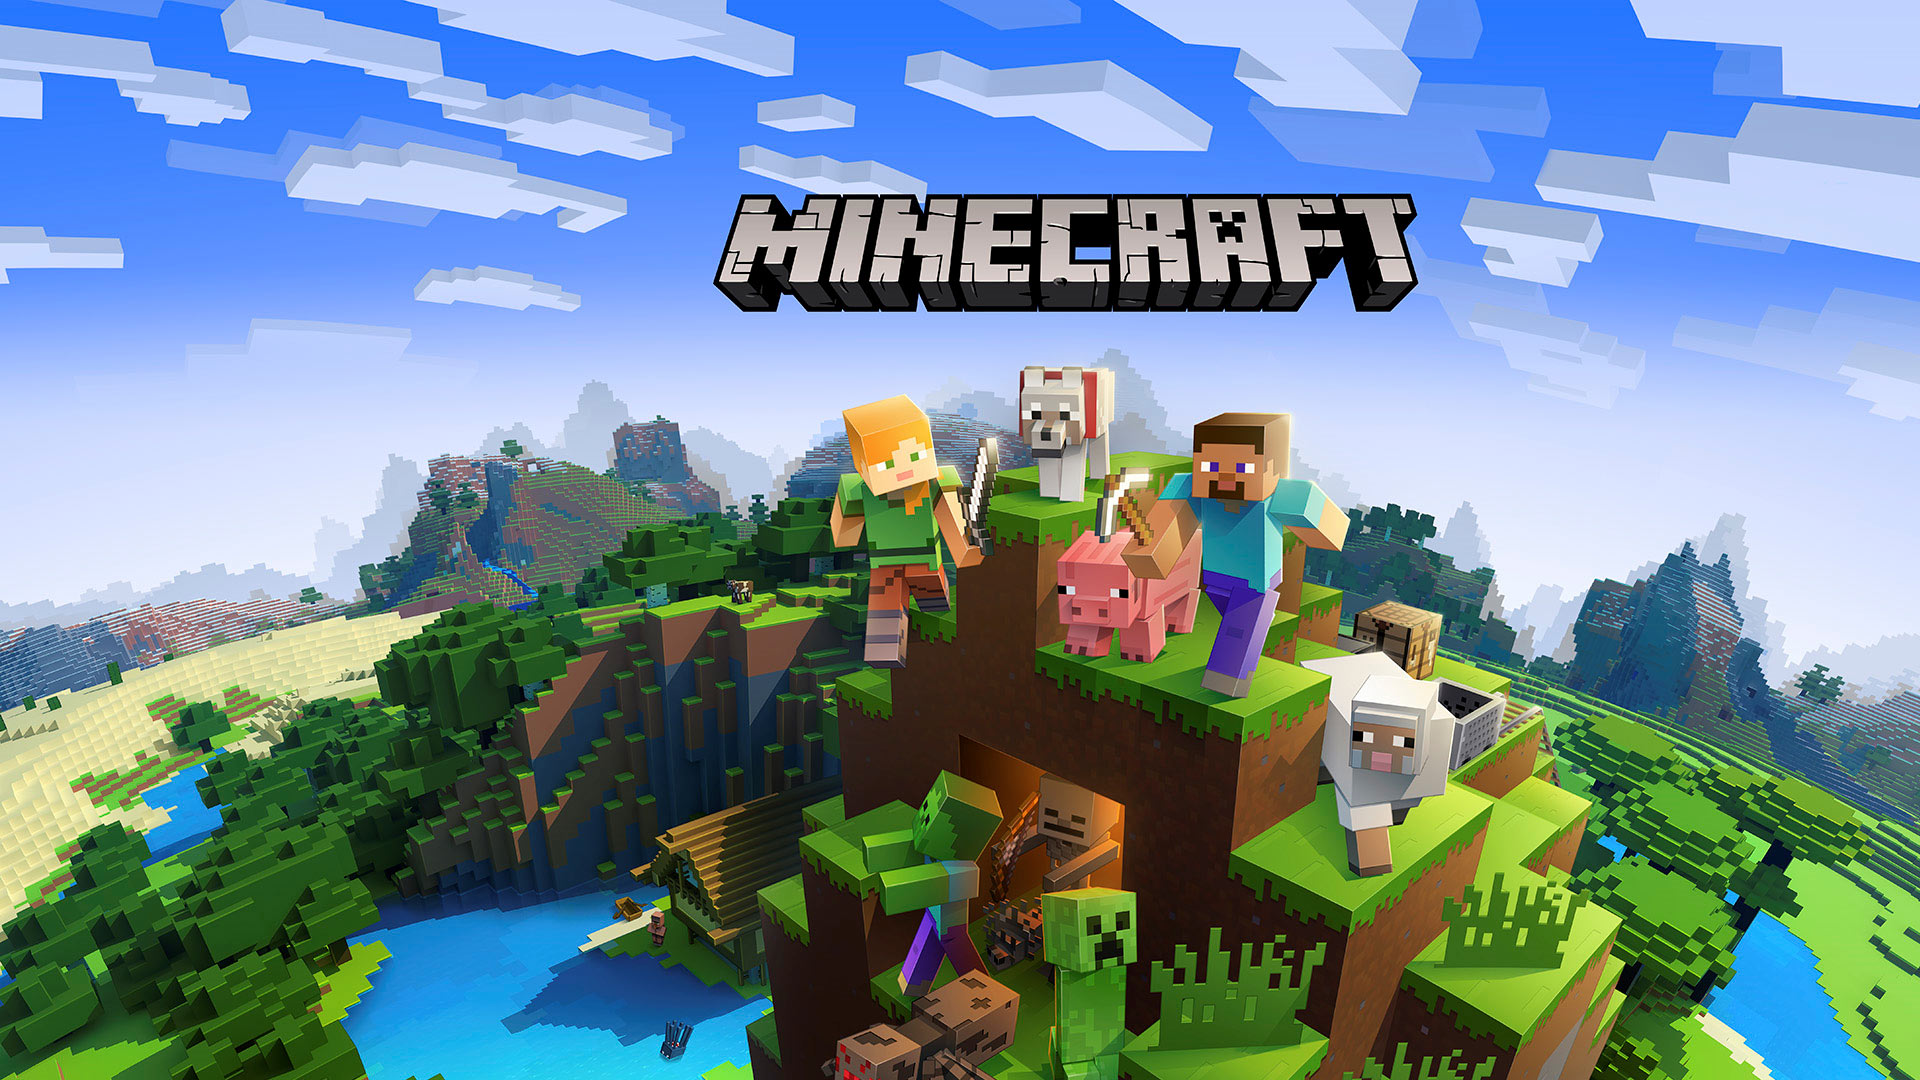 Minecraft Wallpaper Better Together